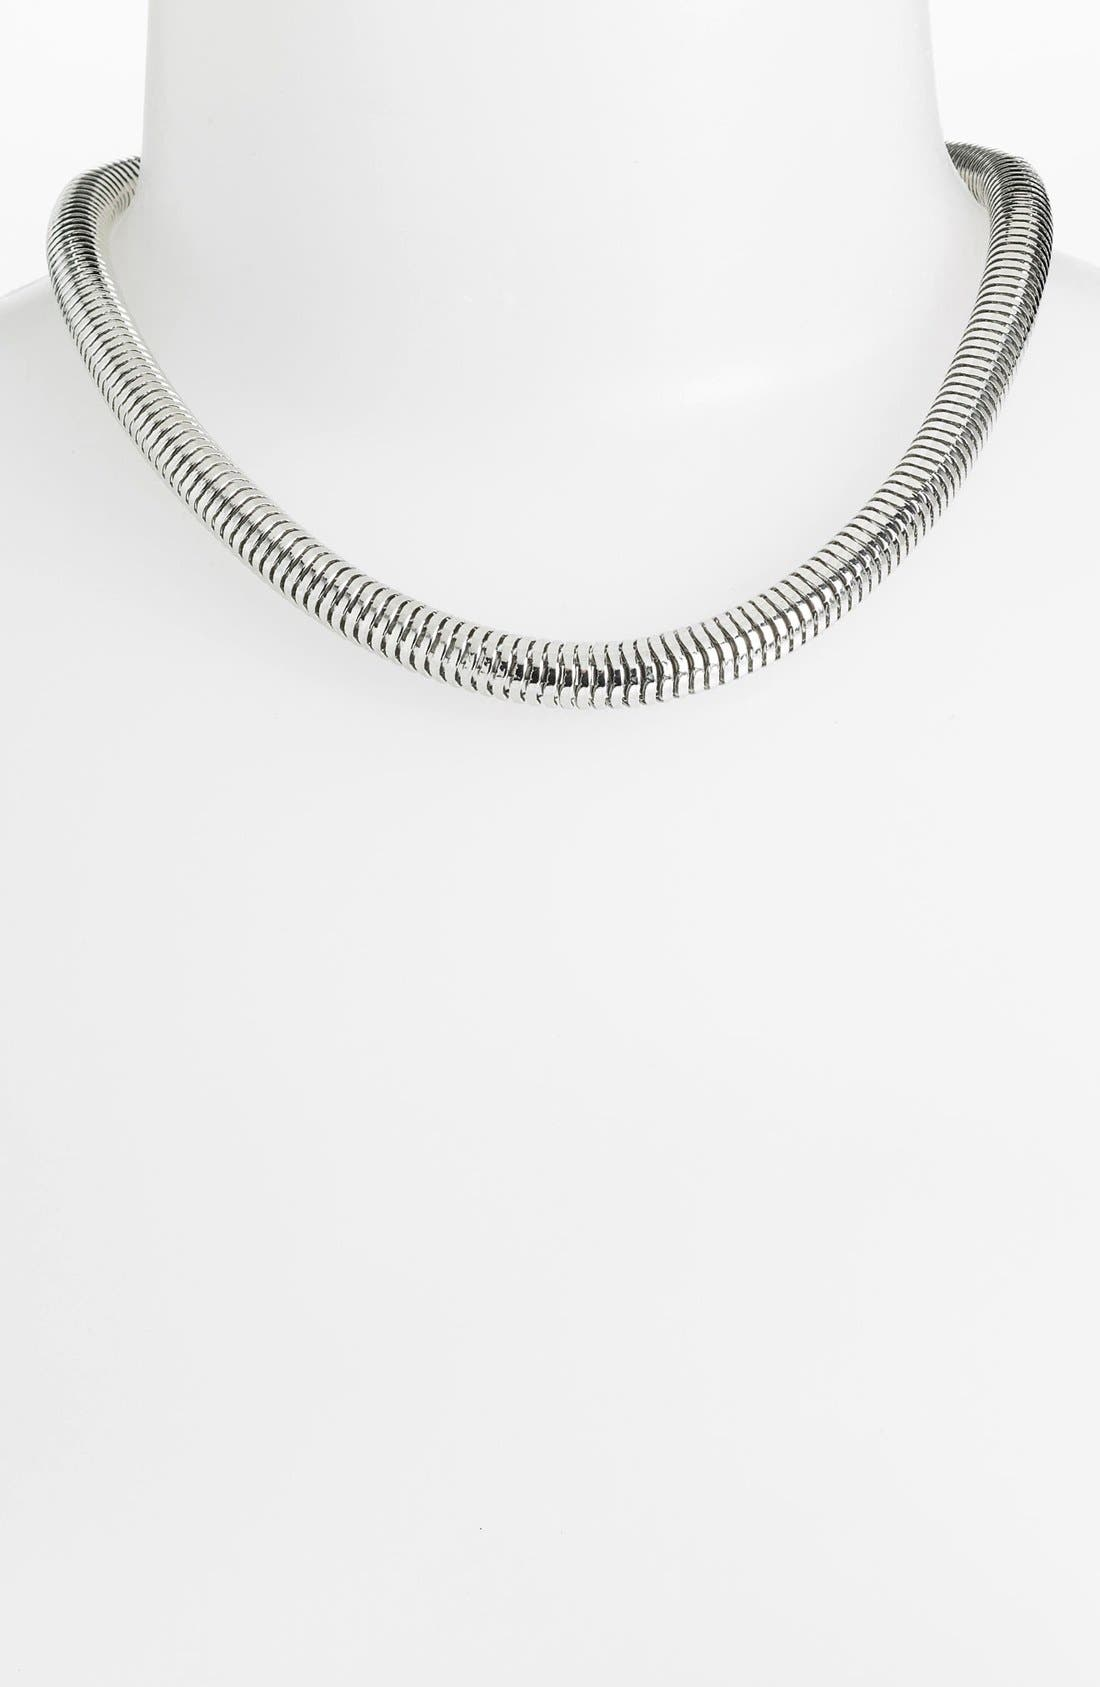 Alternate Image 1 Selected - Vince Camuto Snake Chain Necklace